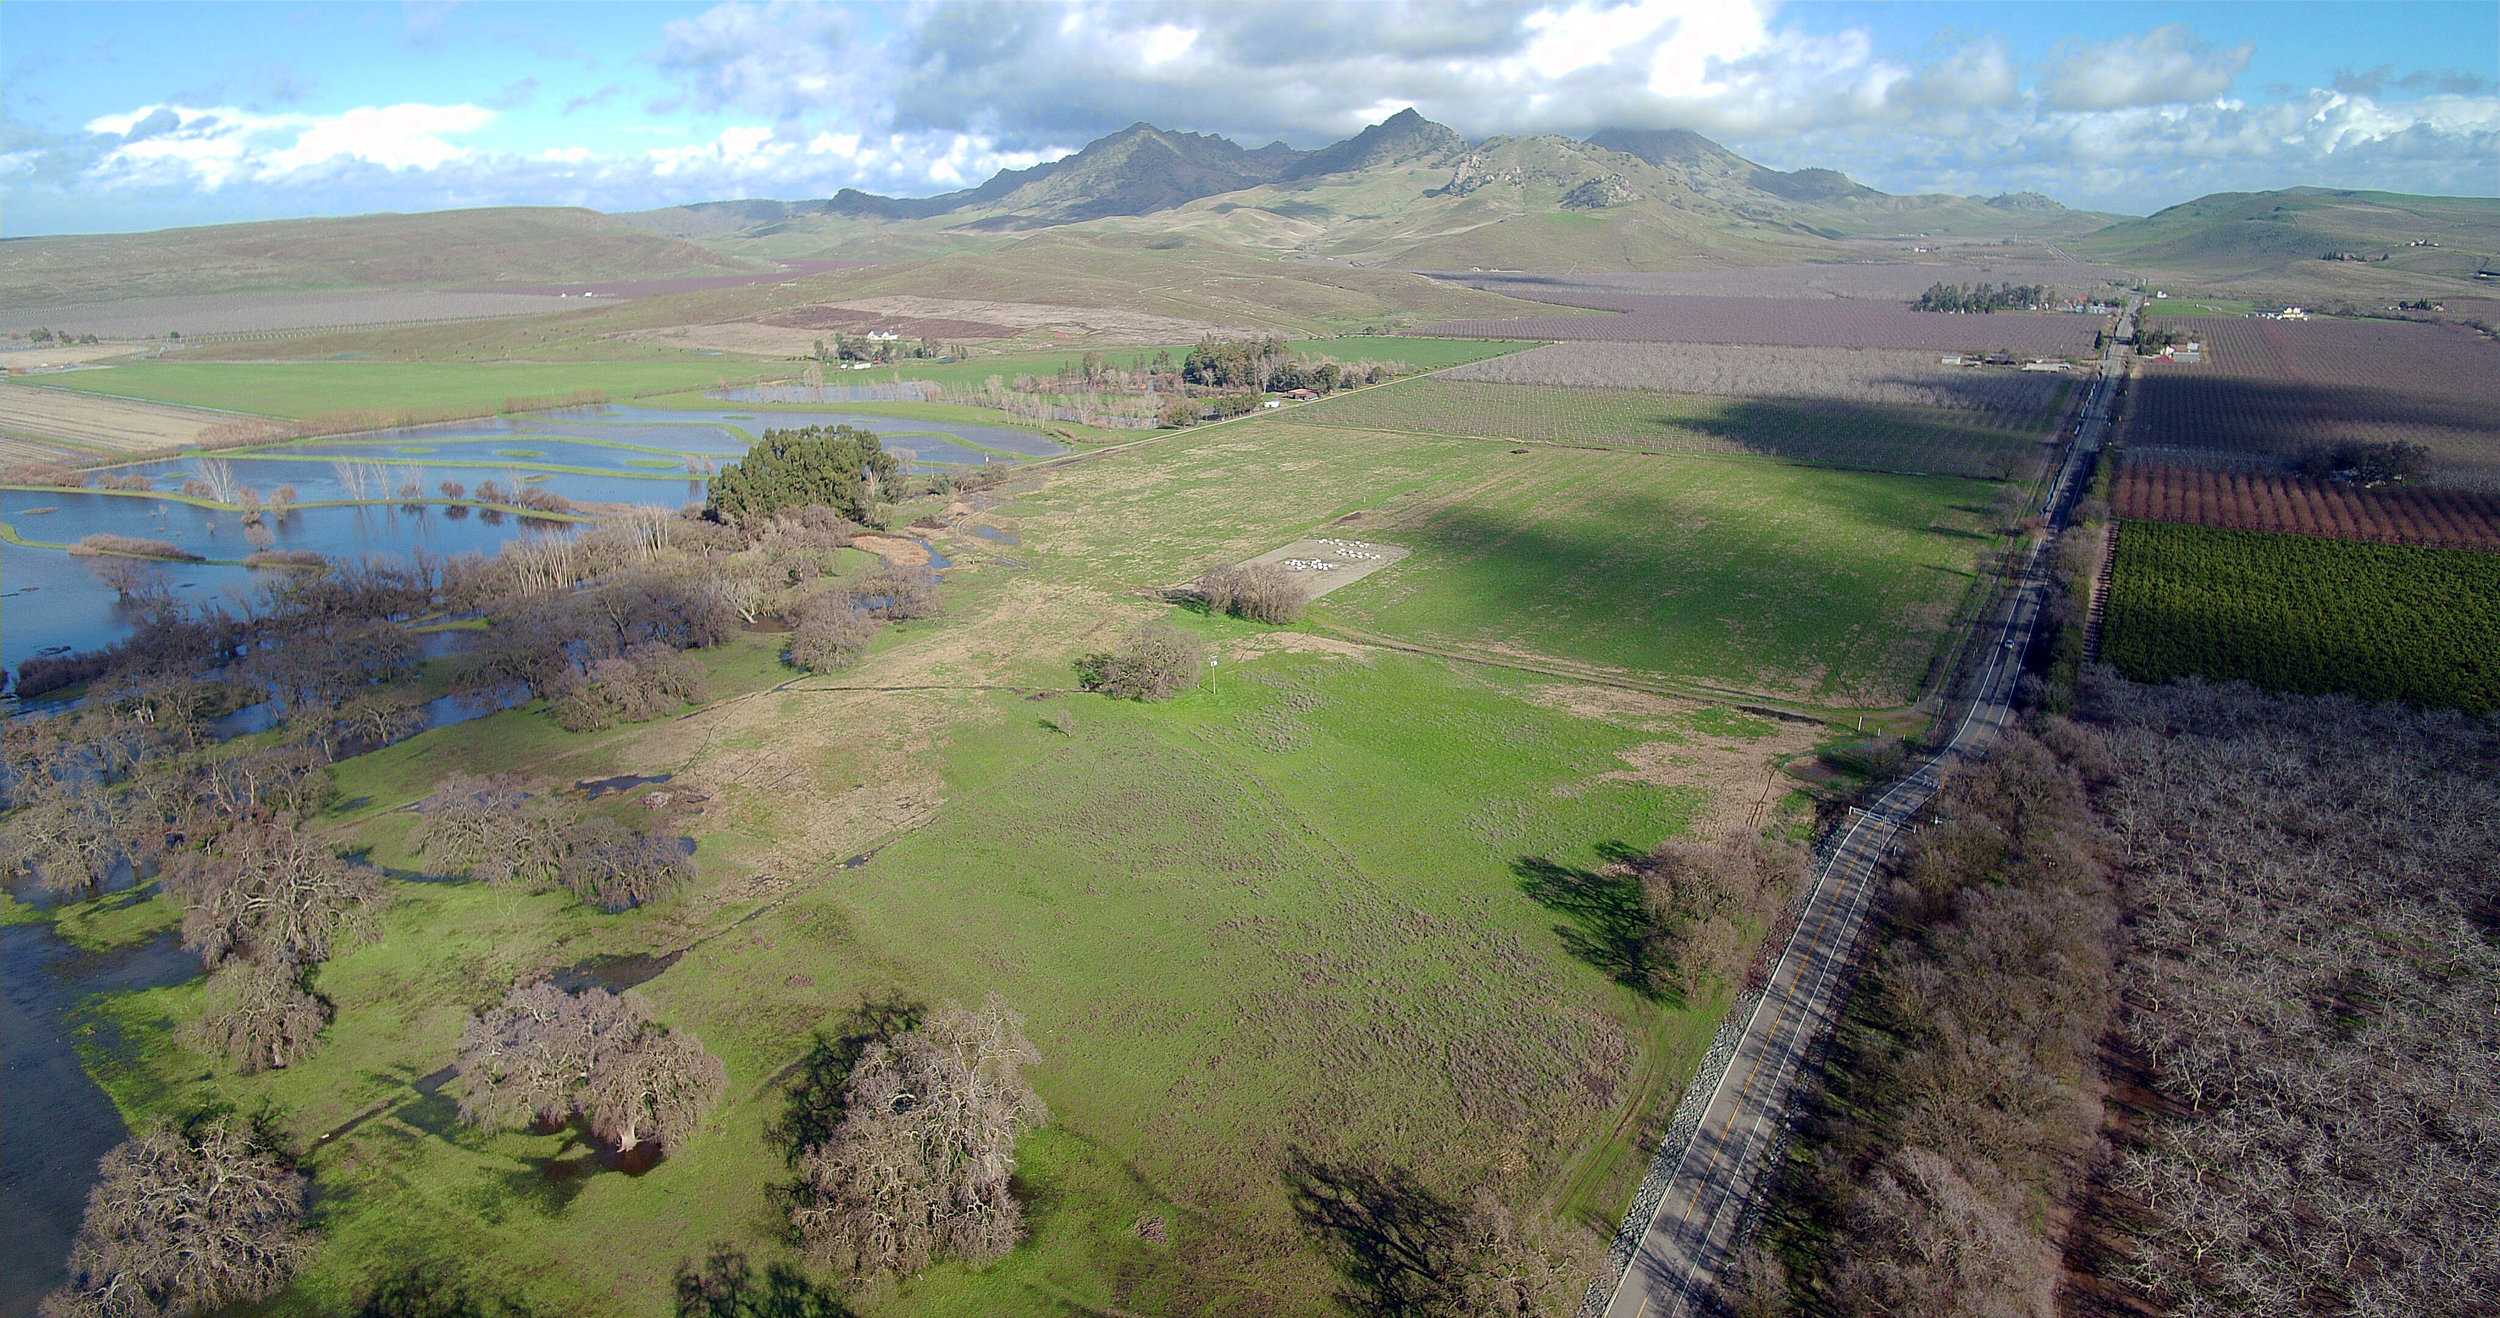 Drones for Aerial Photography in Northern California